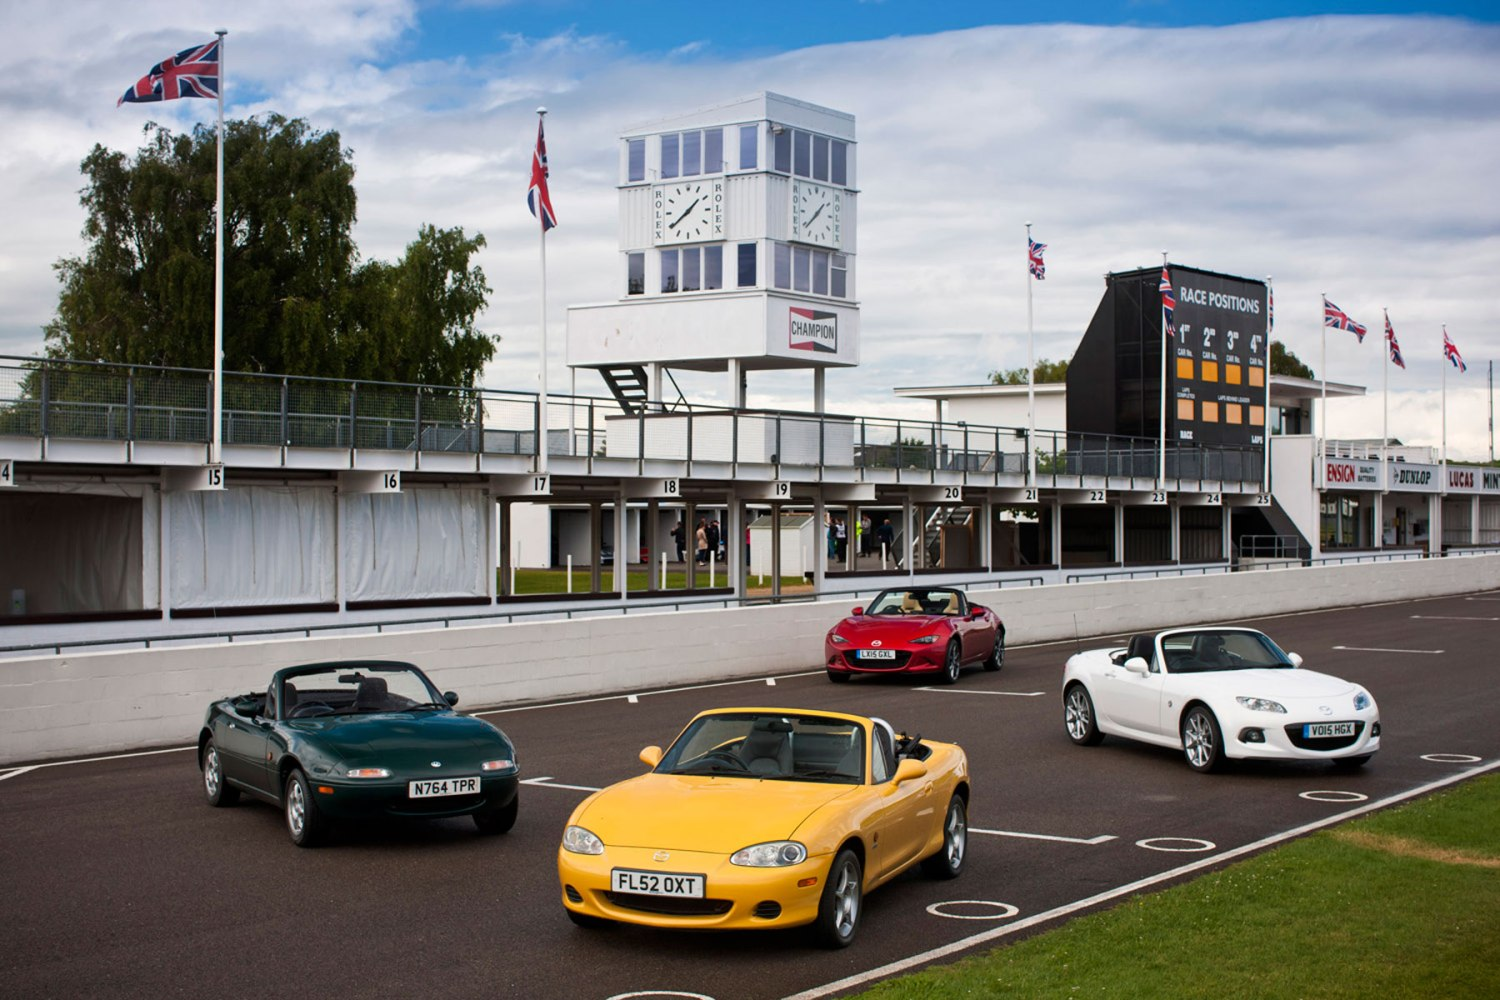 Roadster love: a brief history of the Mazda MX-5   Motoring Research